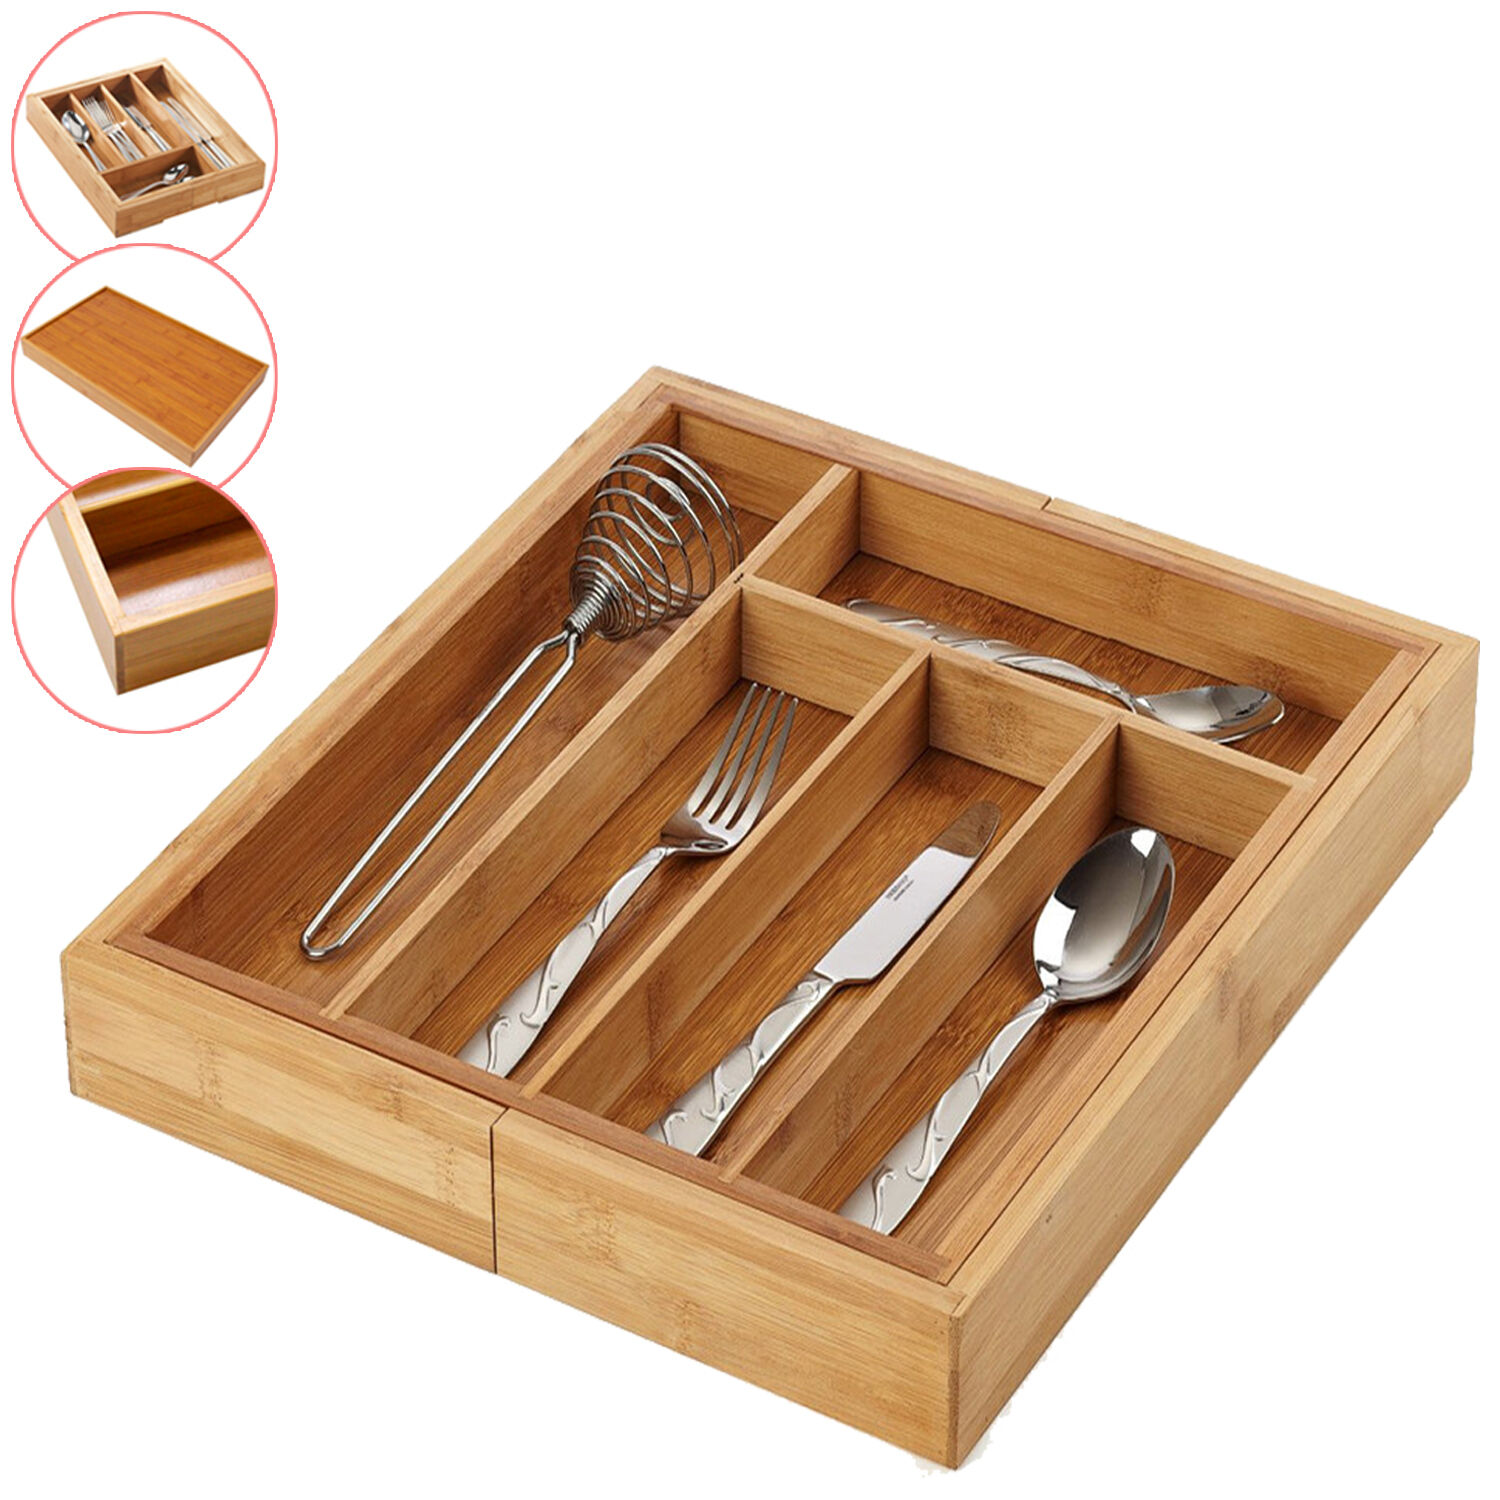 Bamboo Extending Cutlery Drawer Tray Wooden Organiser 5-7 Adjustable Compartments Naturally Durable /& Water Resistant